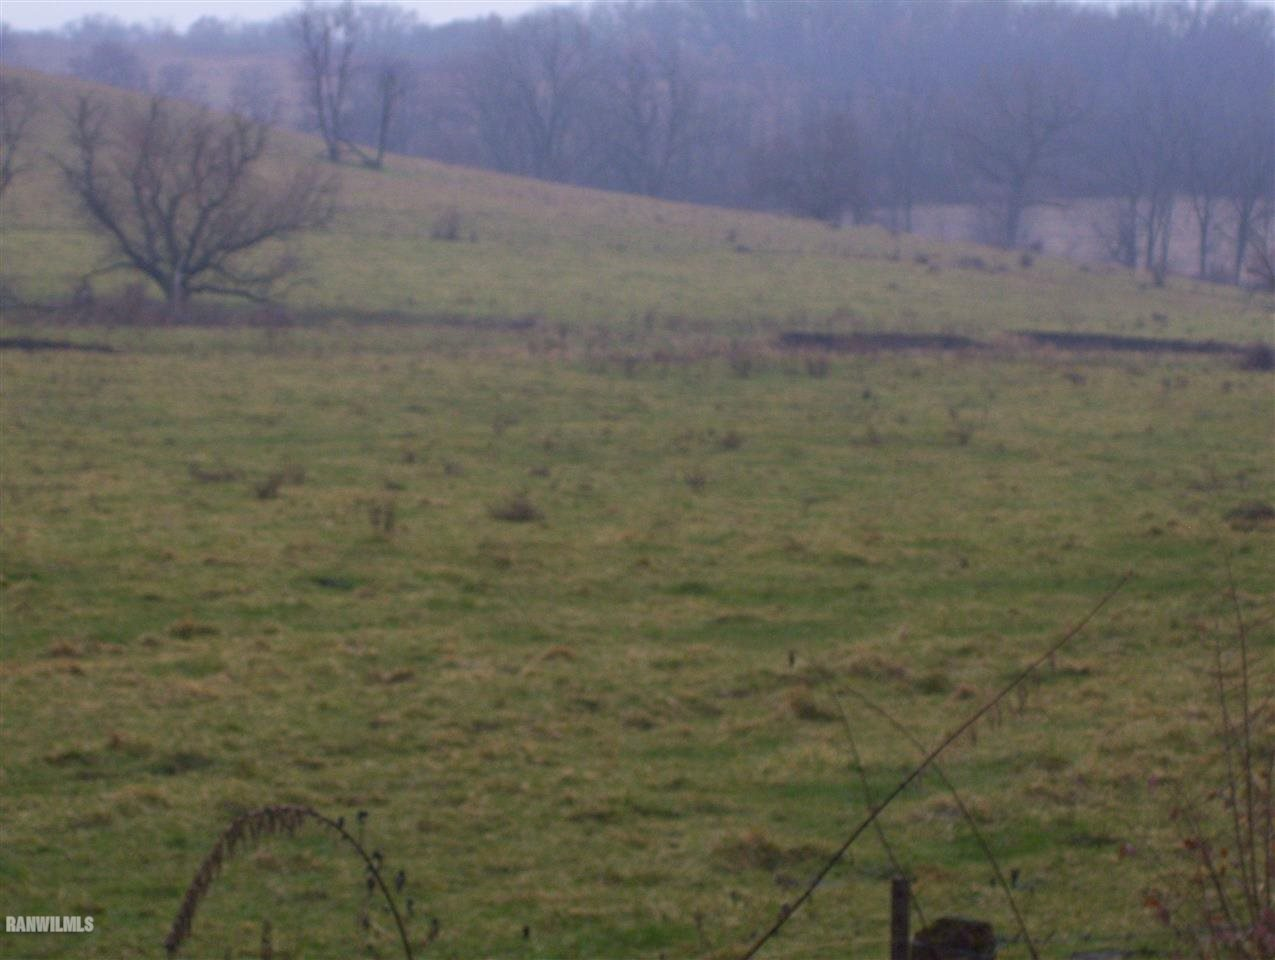 Image of Acreage for Sale near Pearl City, Illinois, in Stephenson county: 217.00 acres